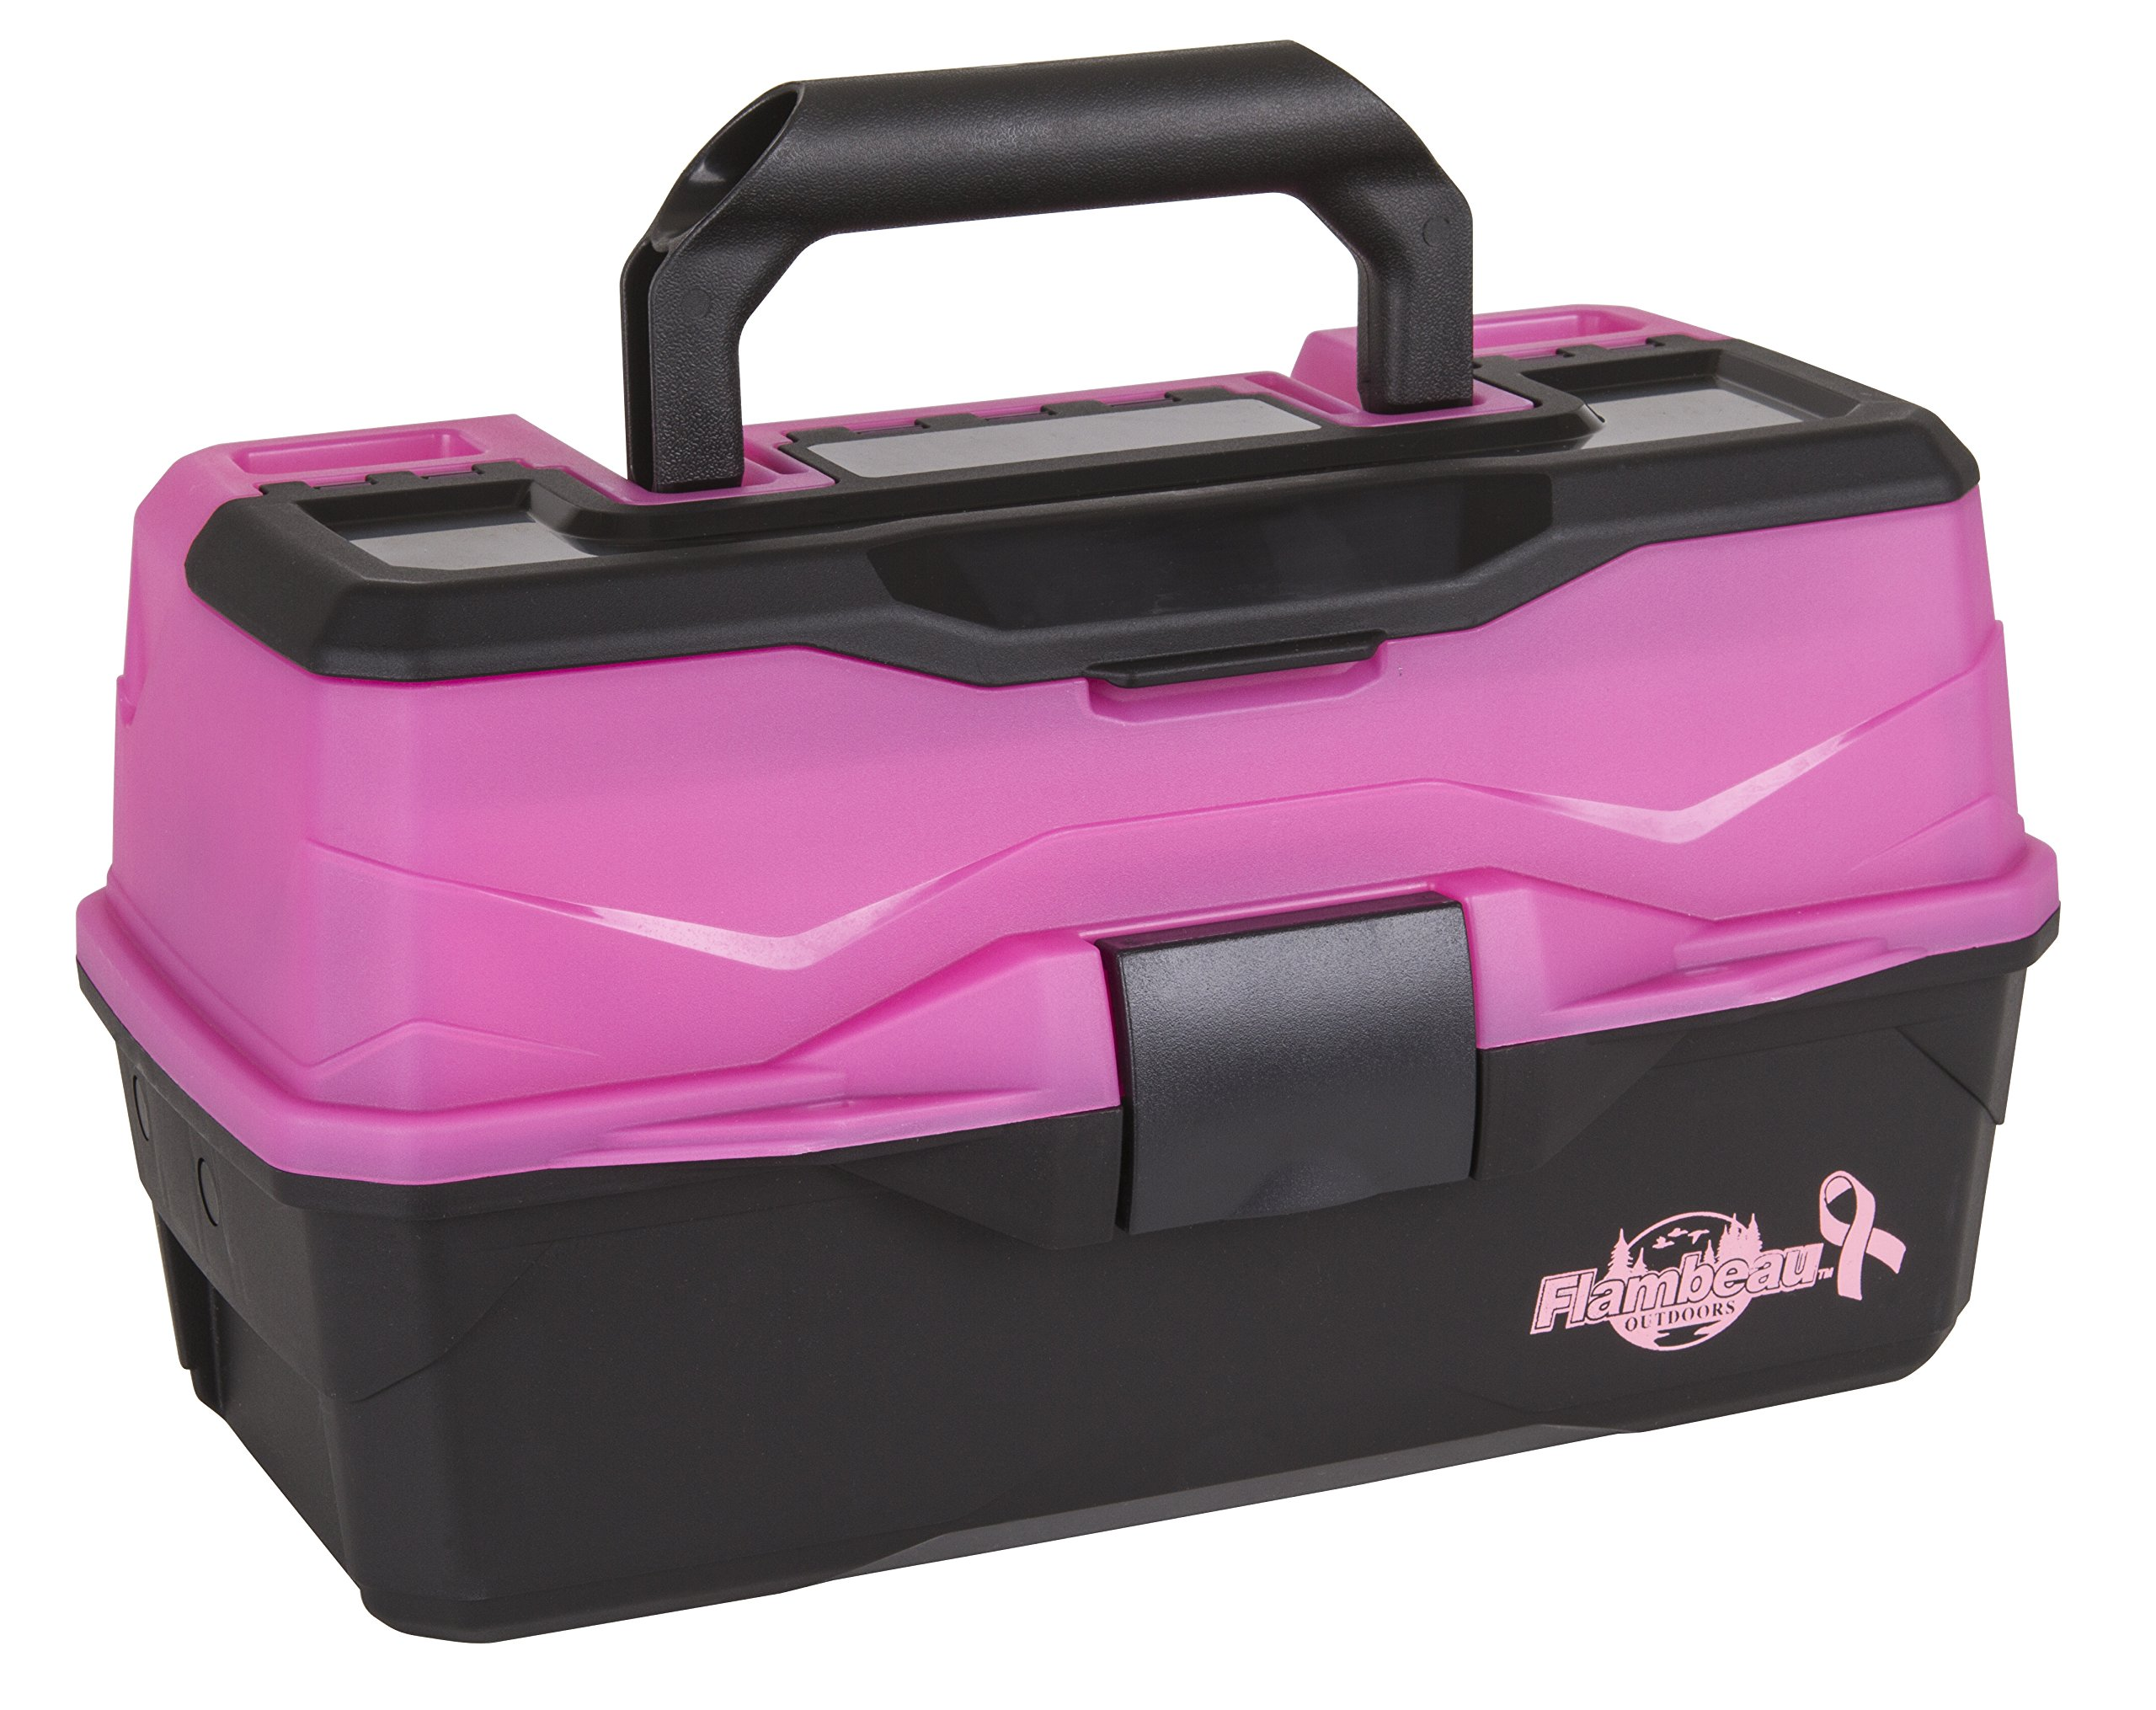 Flambeau Outdoors 6382FP 2-Tray - Classic Tray Tackle Box - Frost Pink/Black by Flambeau Outdoors